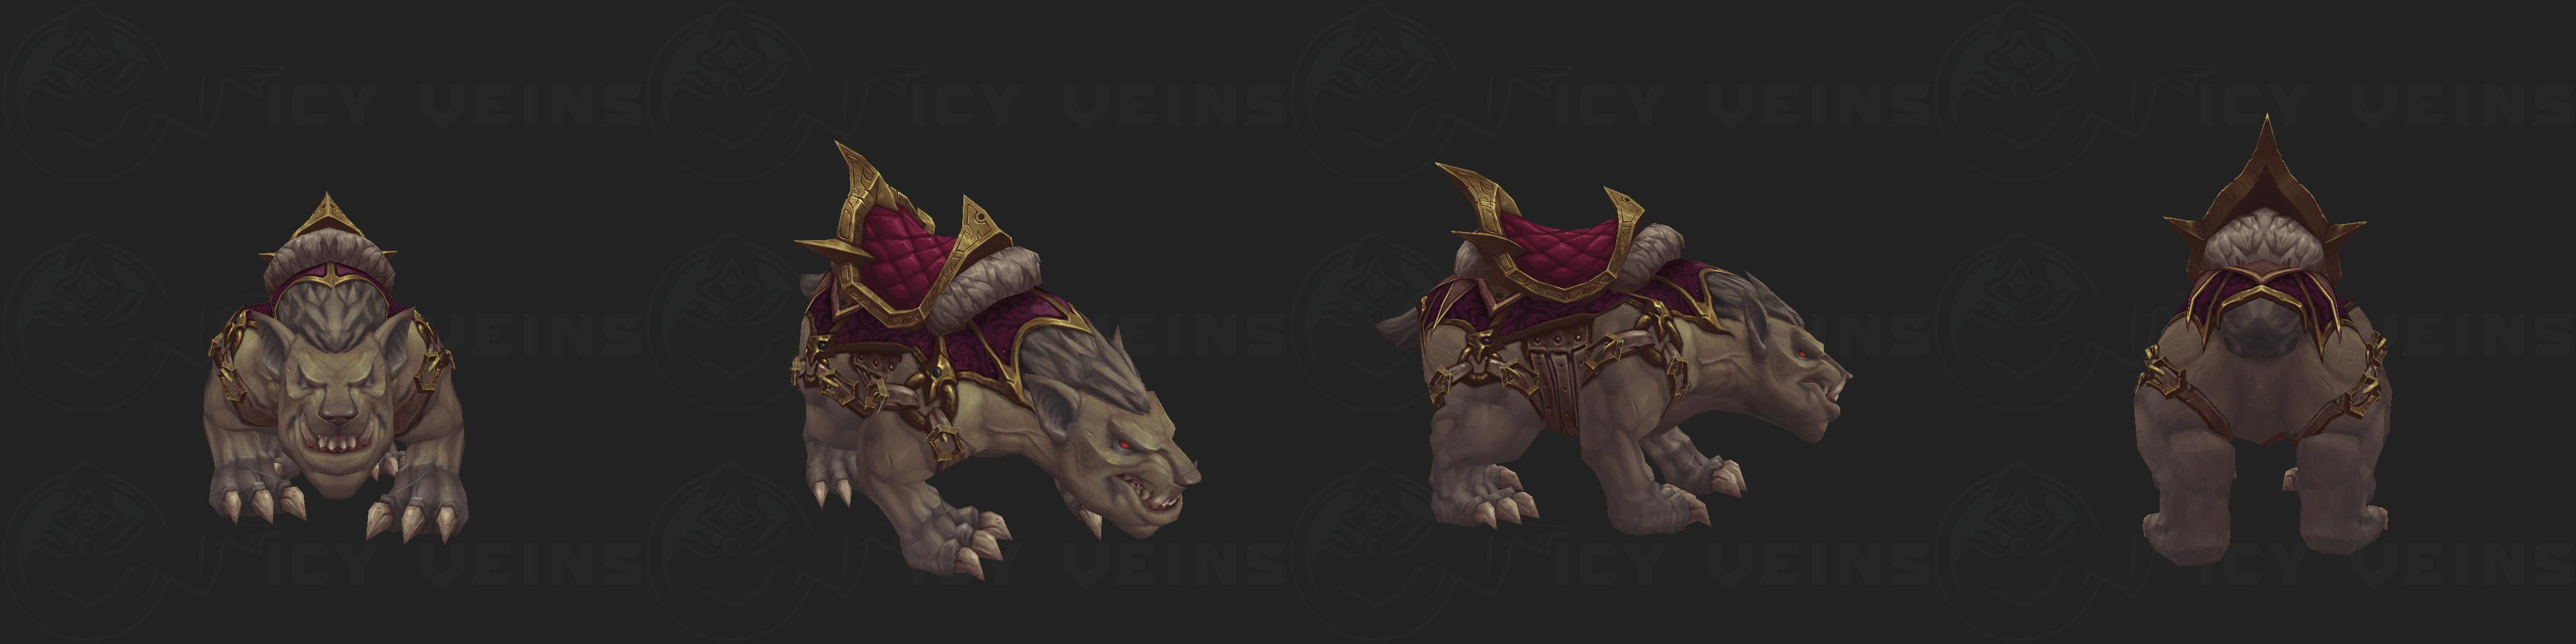 Inquisition Gargon Mount